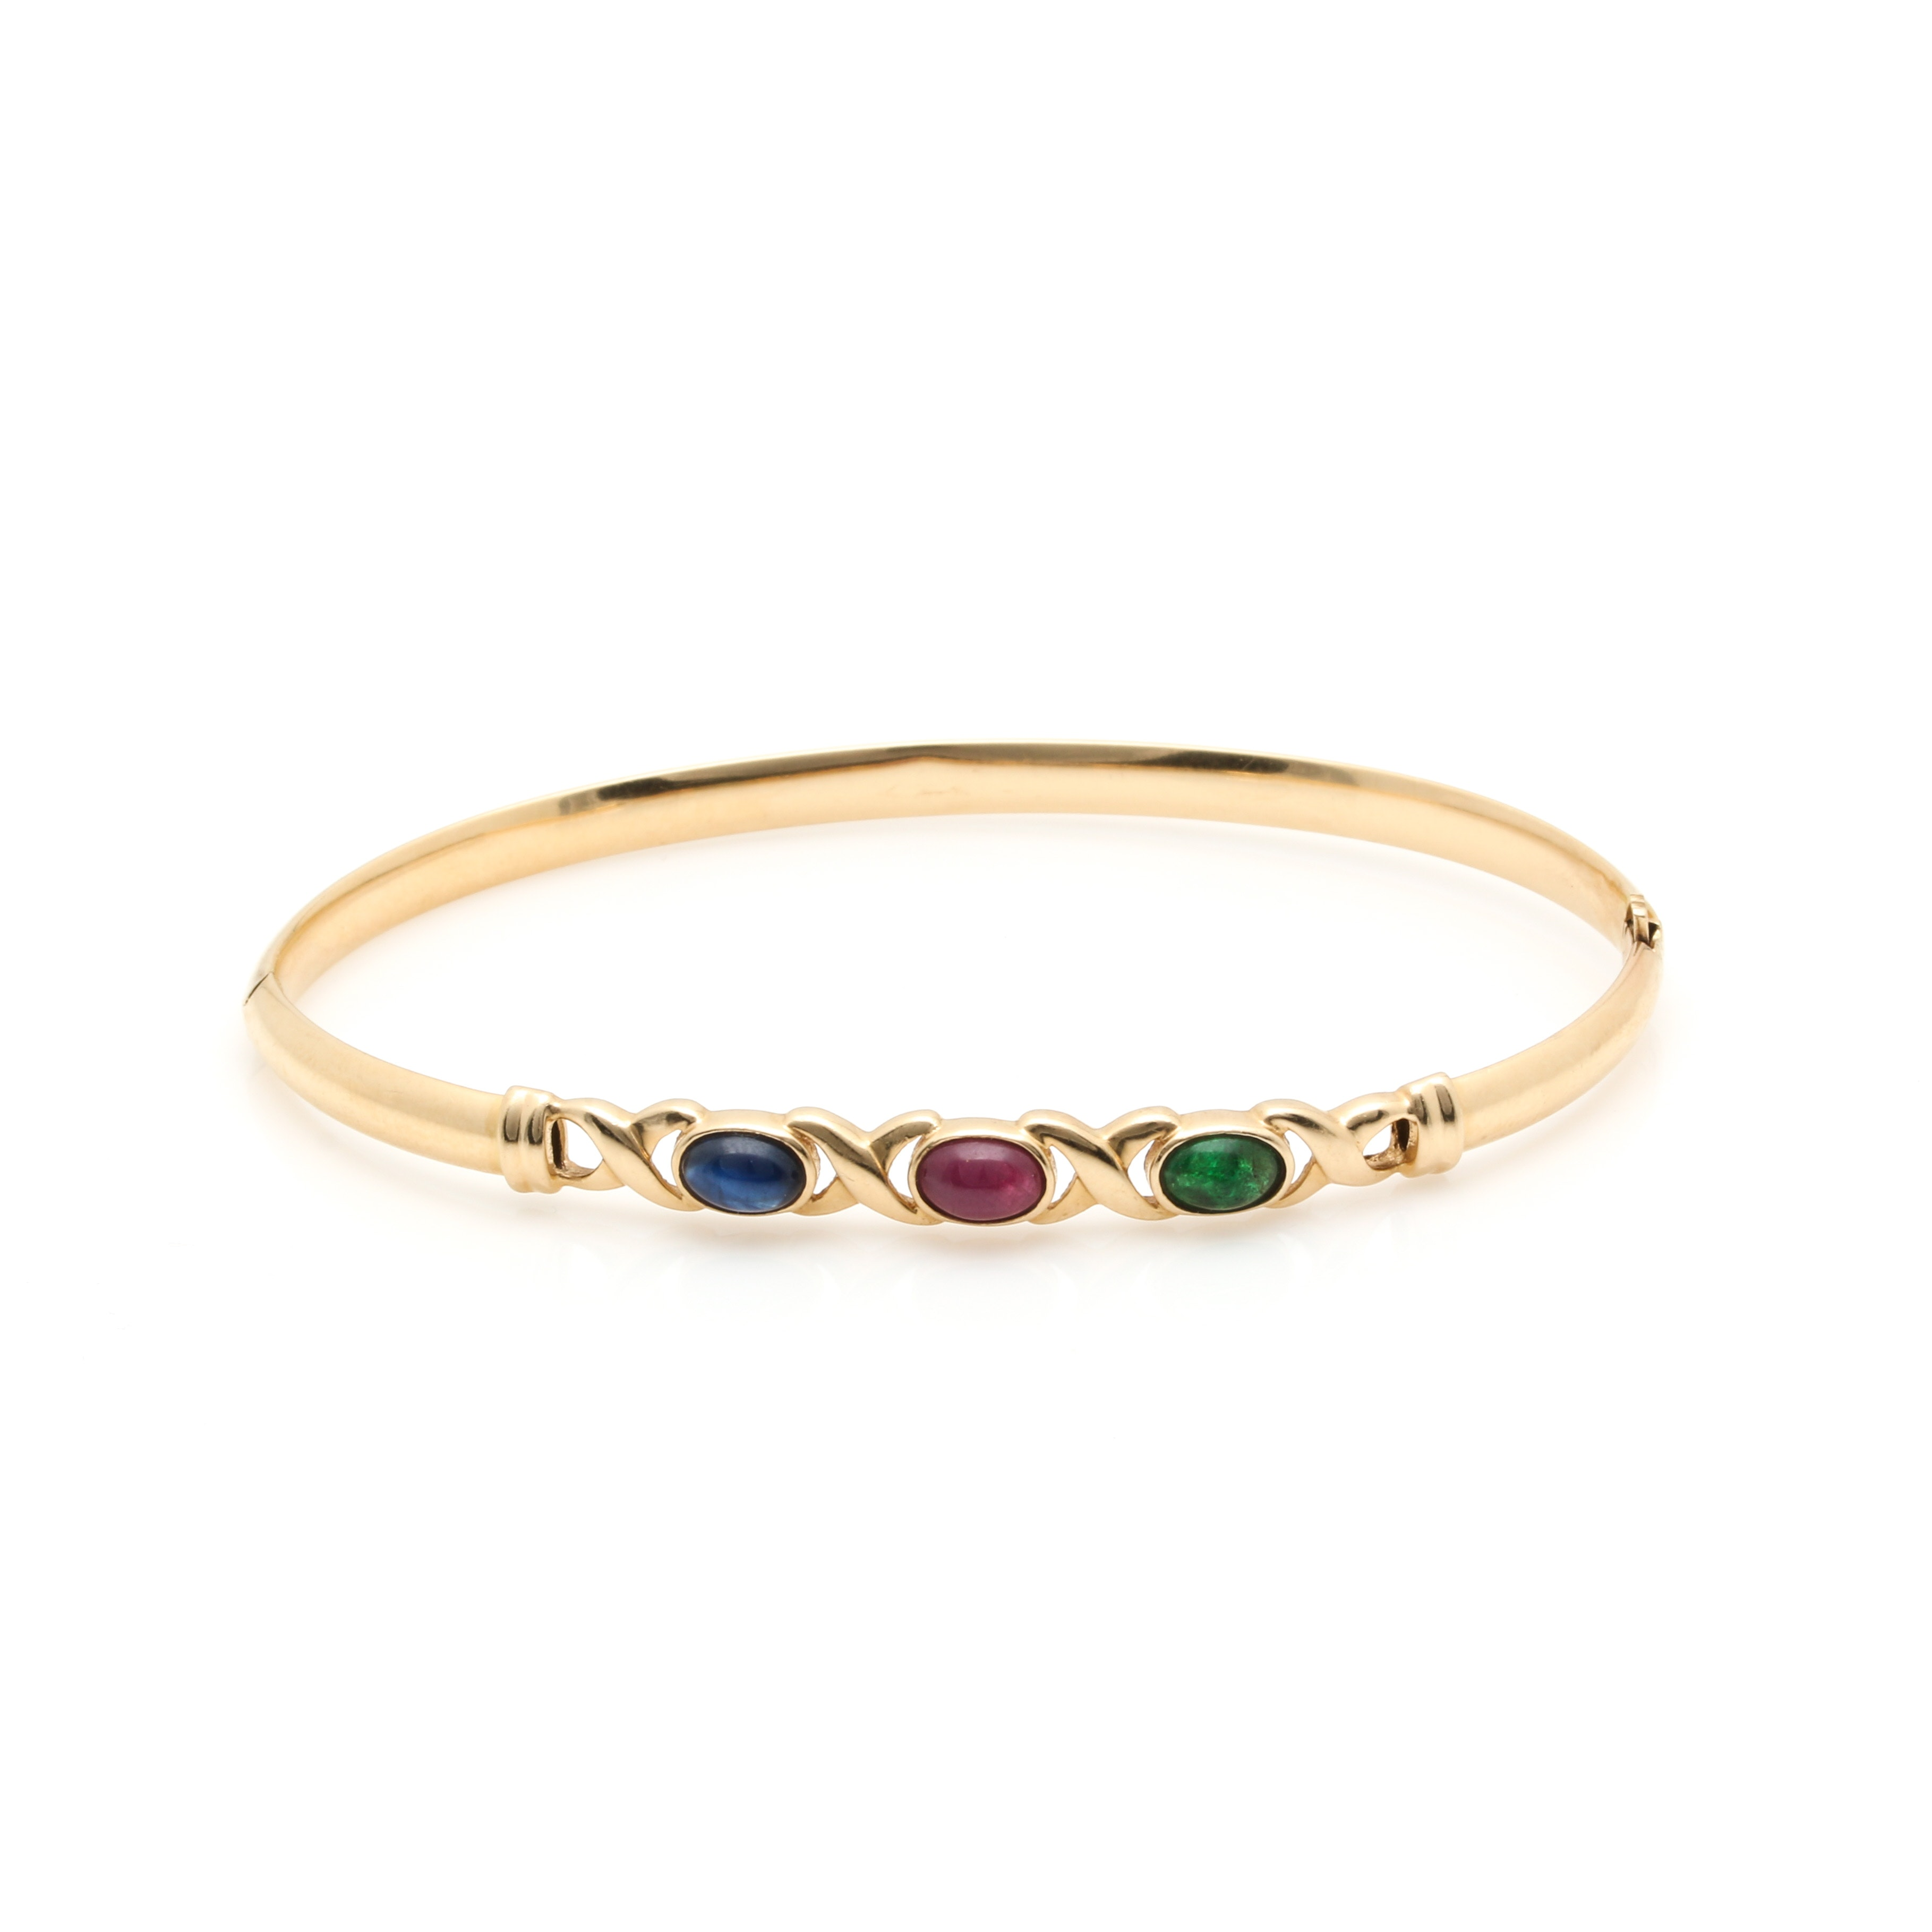 14K Yellow Gold Emerald, Sapphire and Ruby Hinged Bangle Bracelet